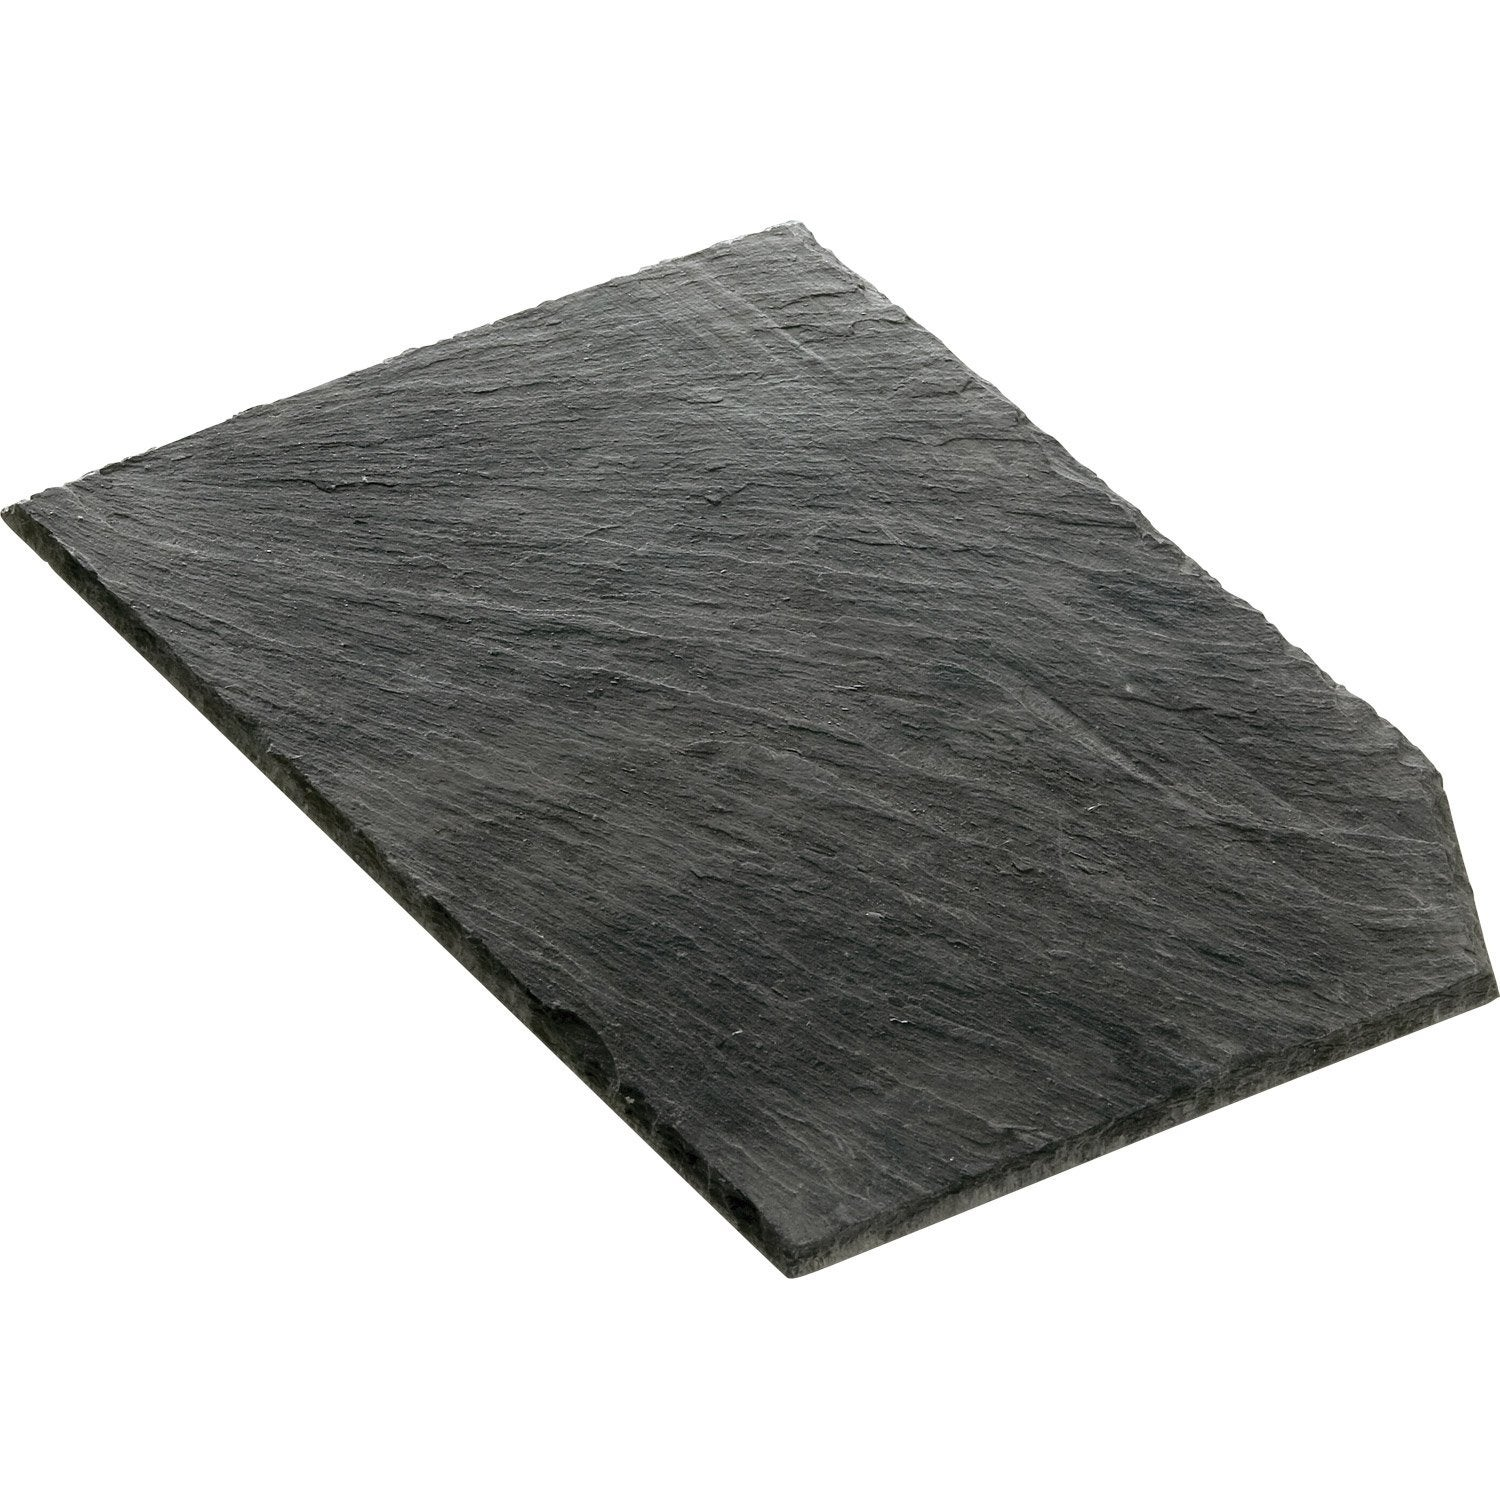 Carrelage ardoise leroy merlin for Carrelage ardoise leroy merlin